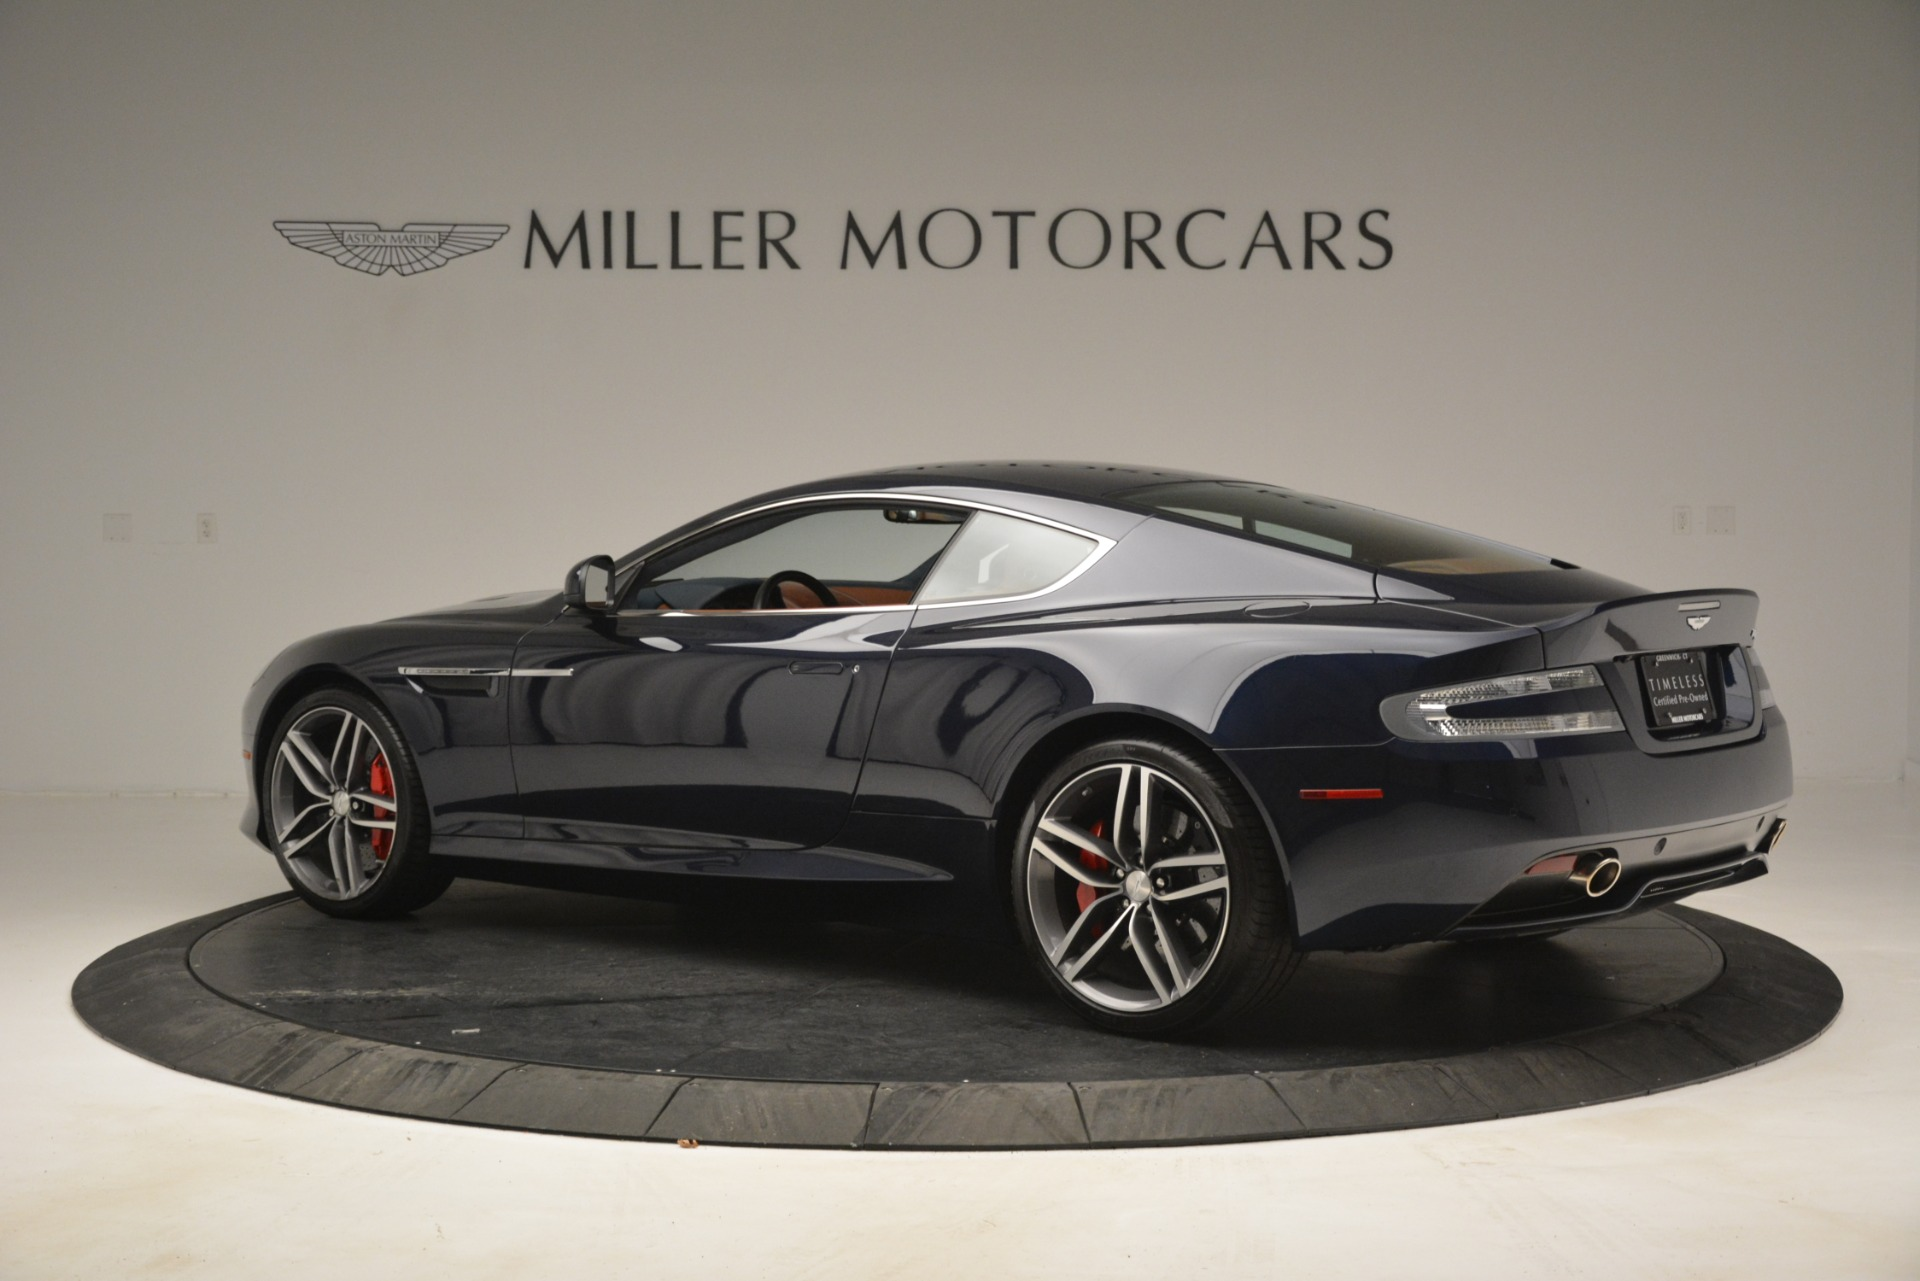 Used 2014 Aston Martin DB9 Coupe For Sale In Greenwich, CT 3010_p4